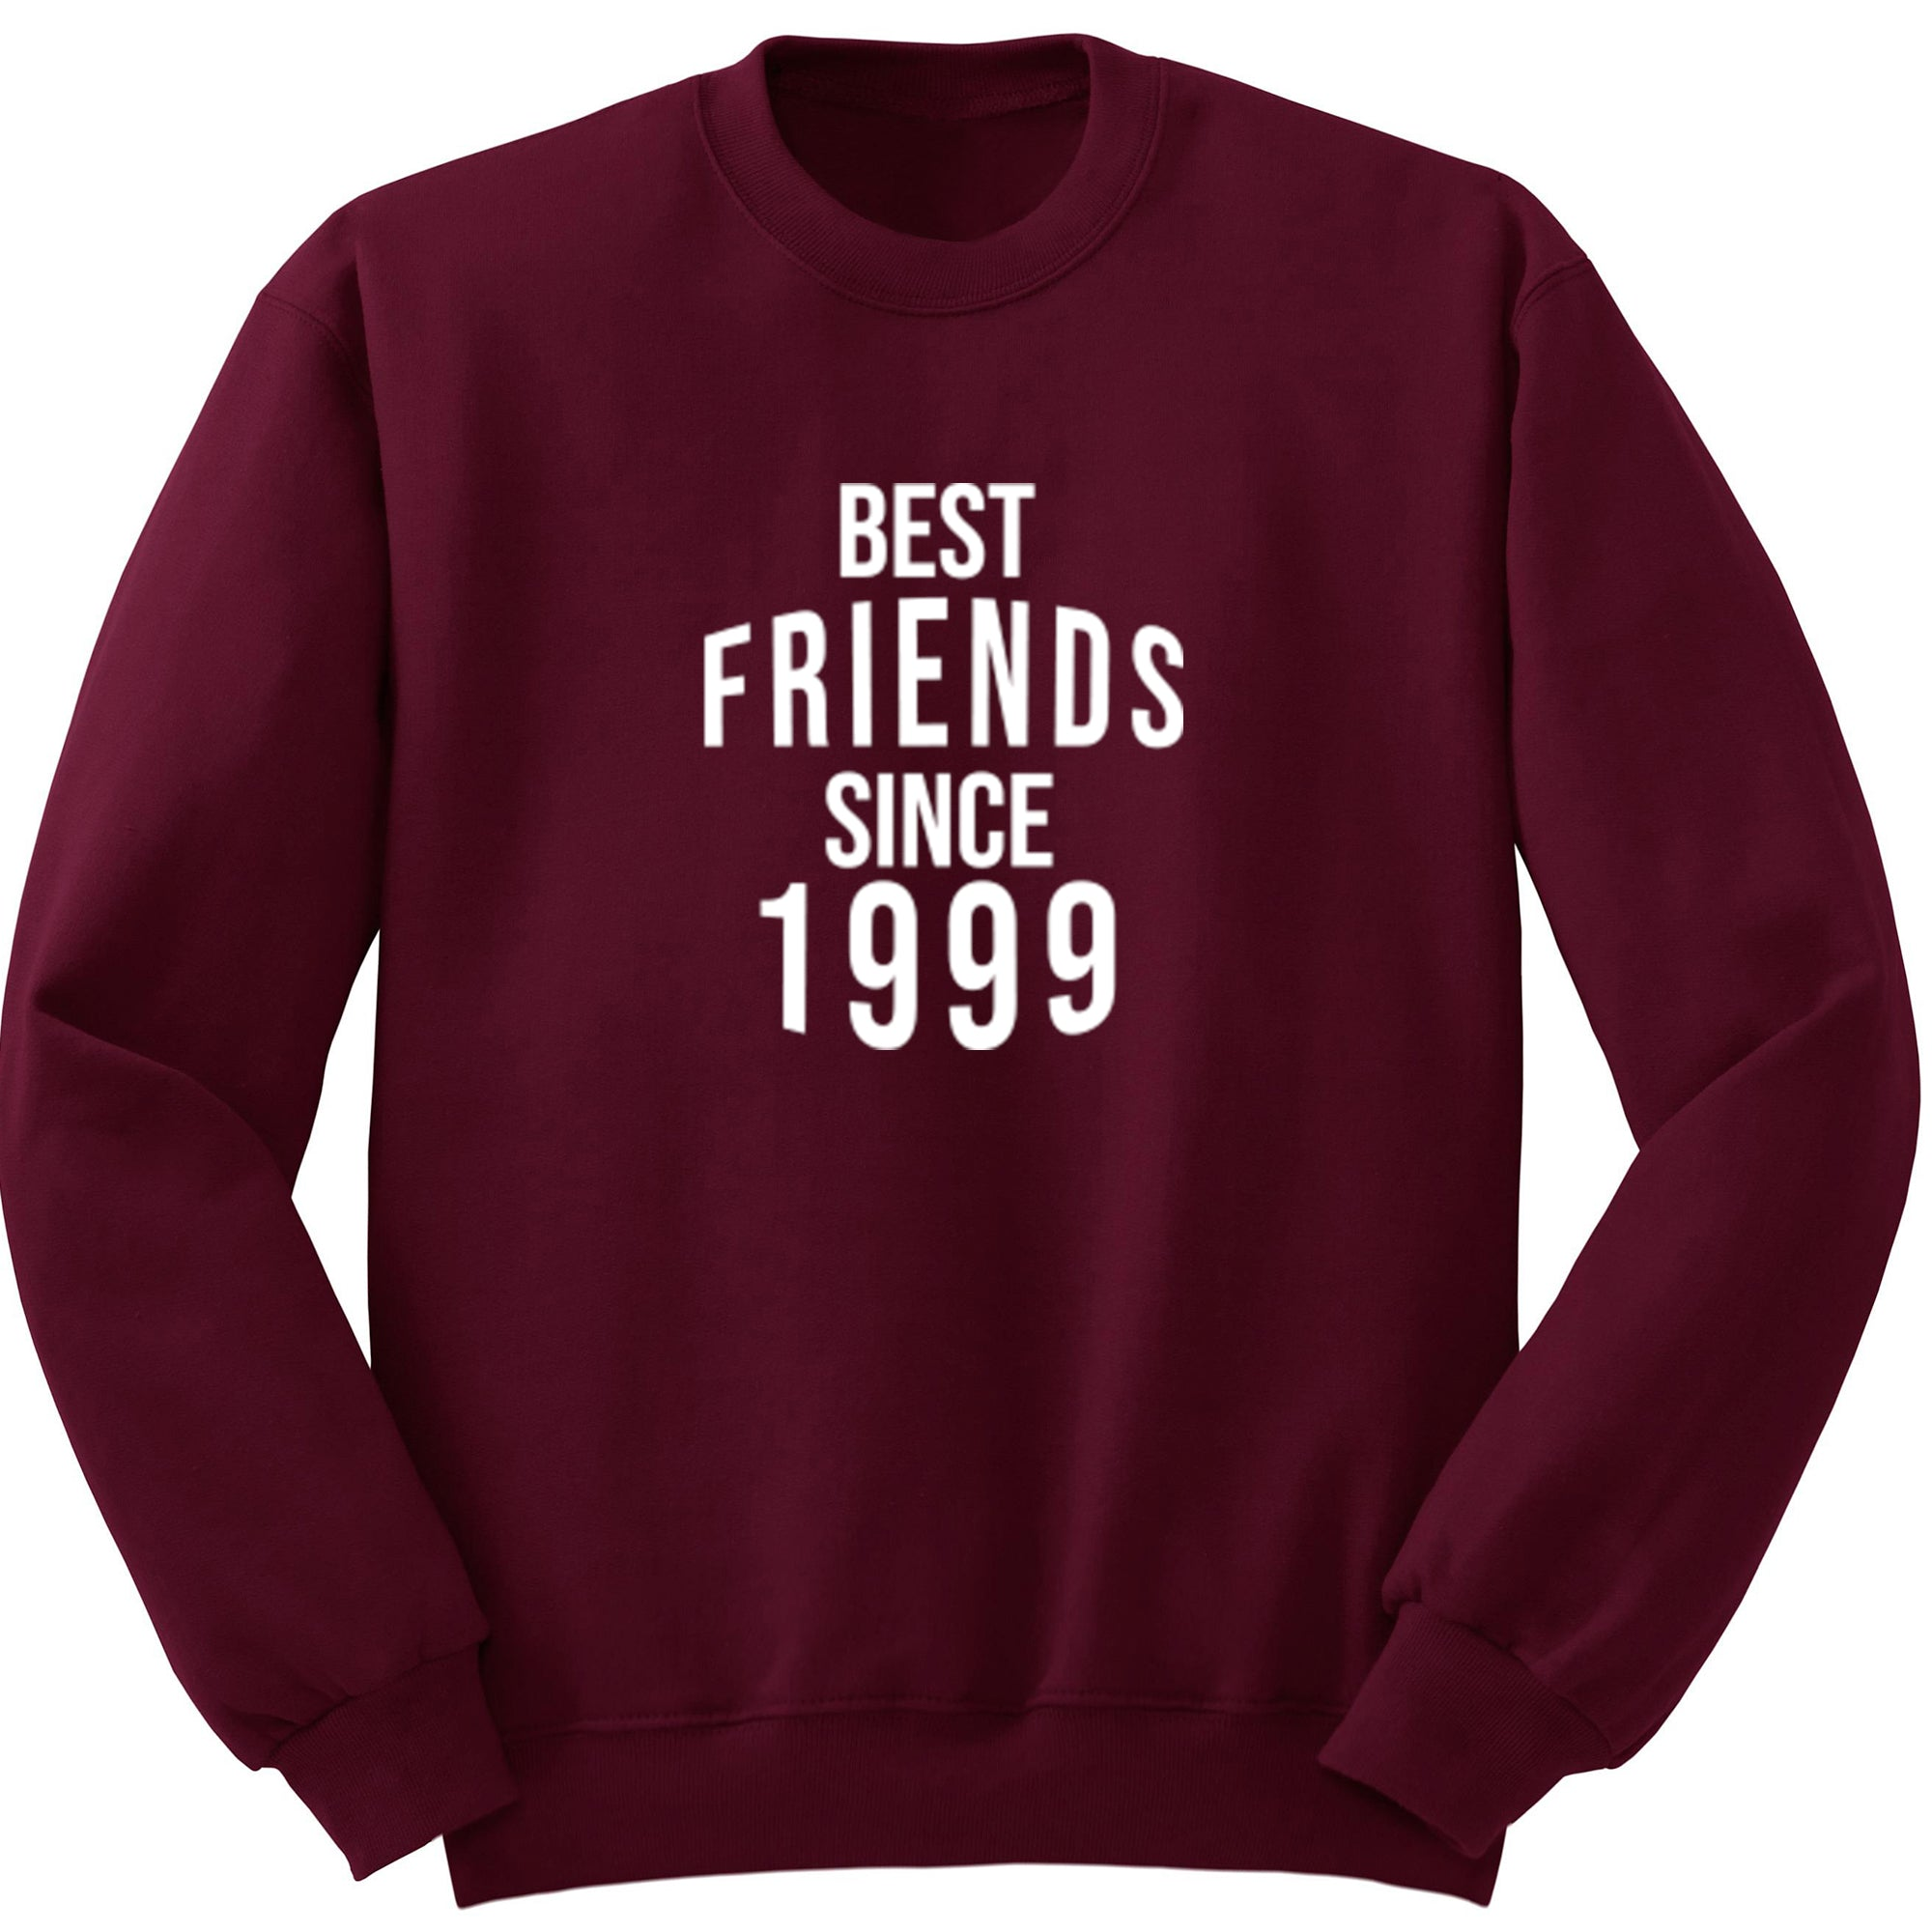 Best Friends Since 1999 Unisex Jumper S0578 - Illustrated Identity Ltd.